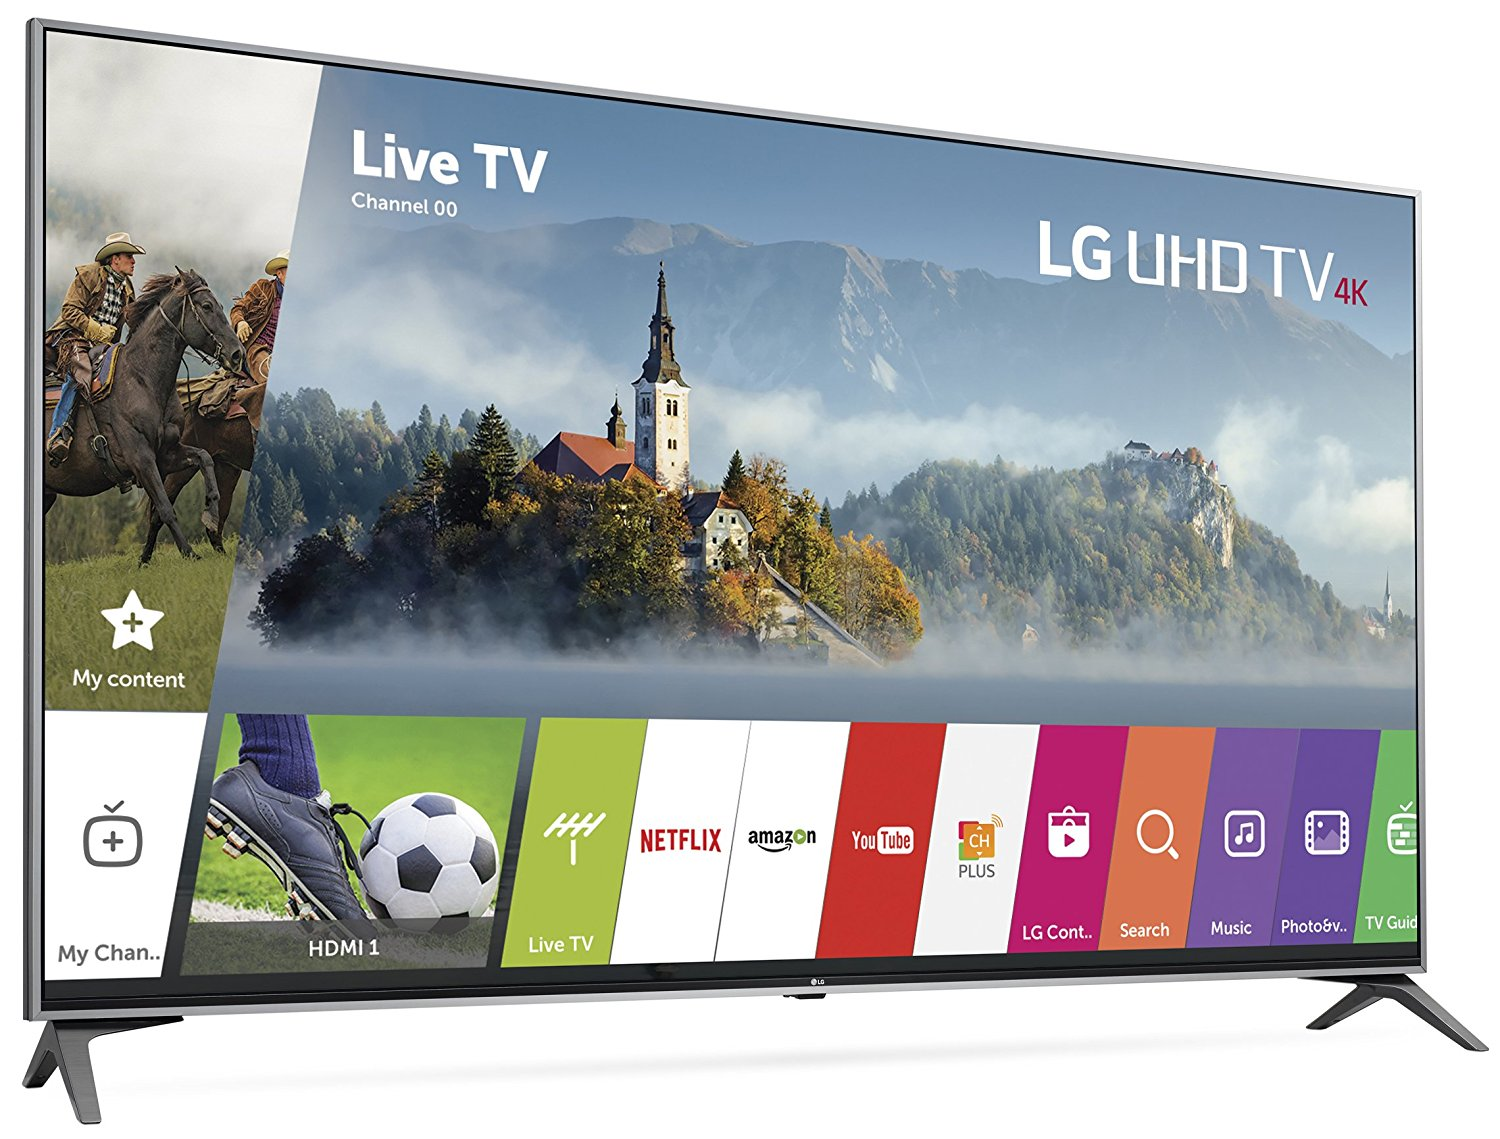 LG 65-Inch 4k UHD Smart TV